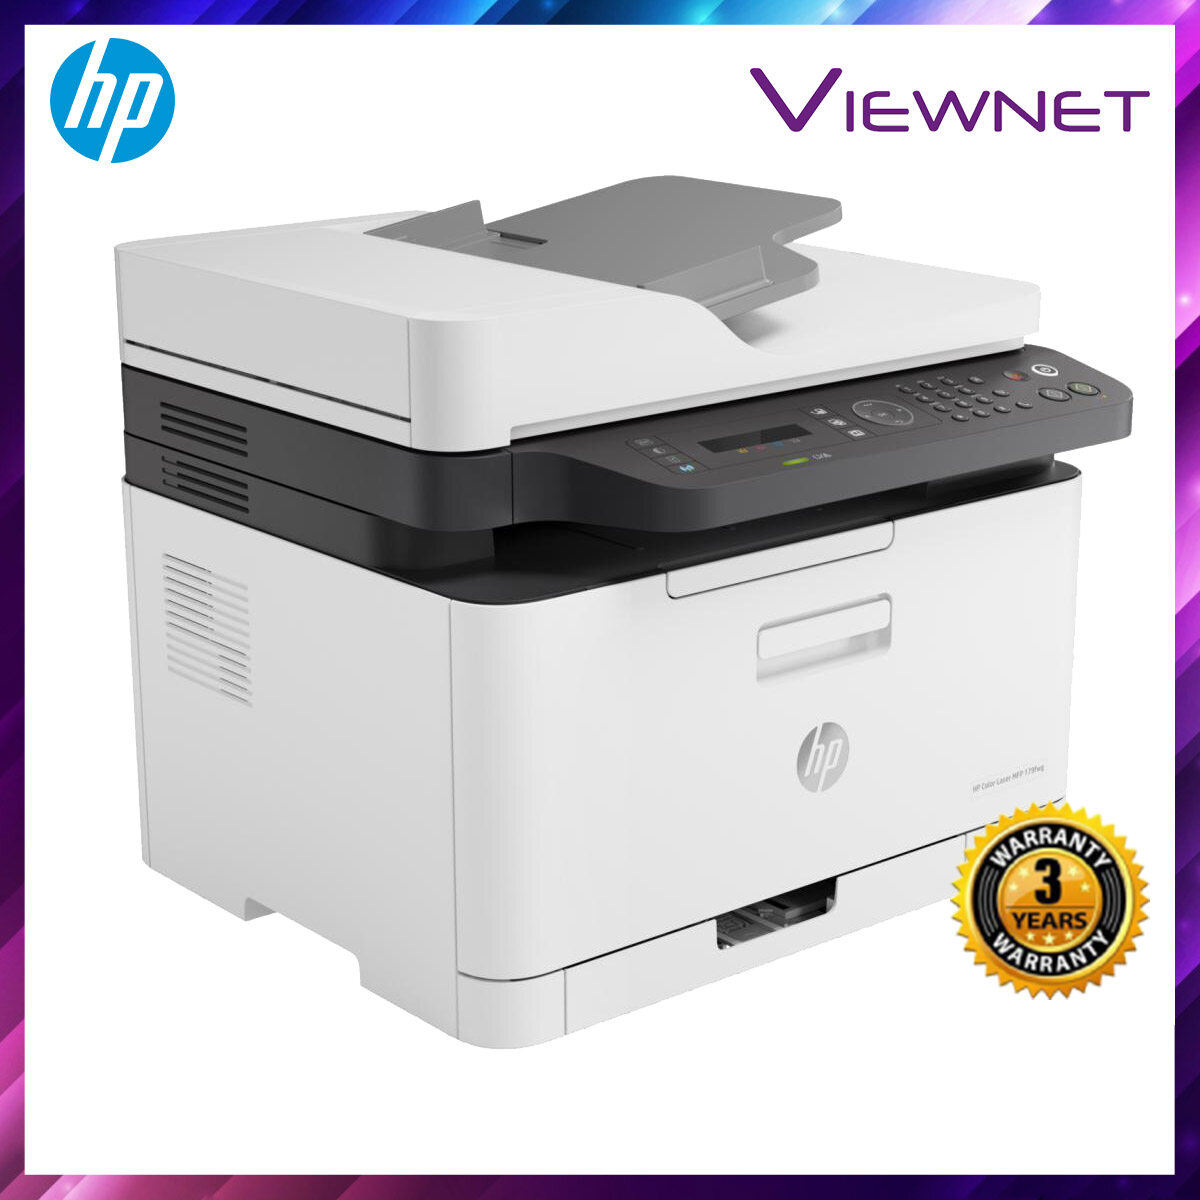 HP COLOR LASER MFP M179FNW PRINT SCAN COPY FAX NETWORK WIRELESS